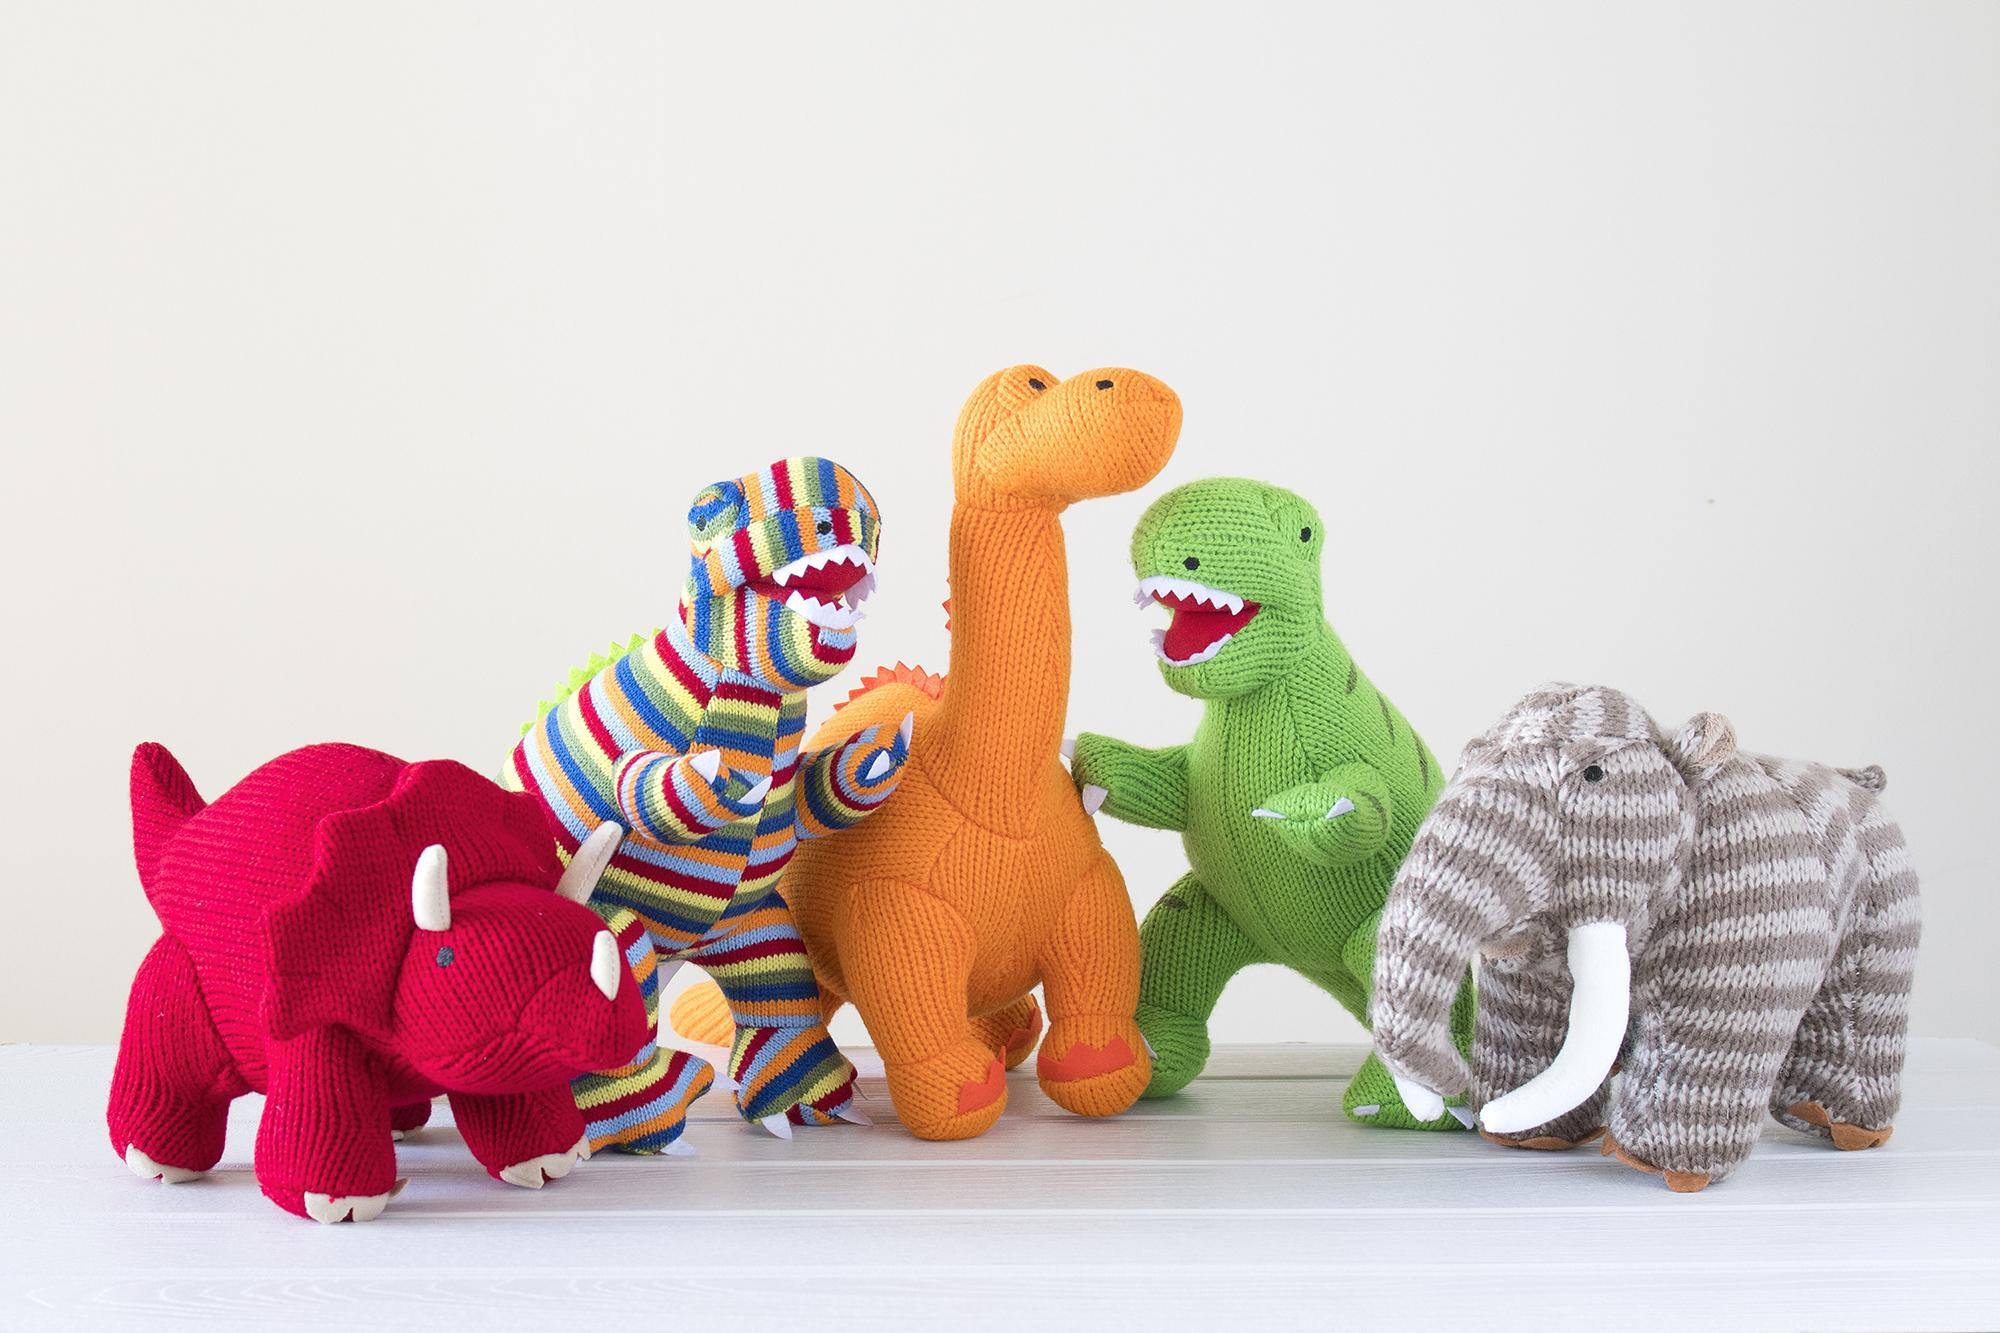 Dinosaur toys and rattles